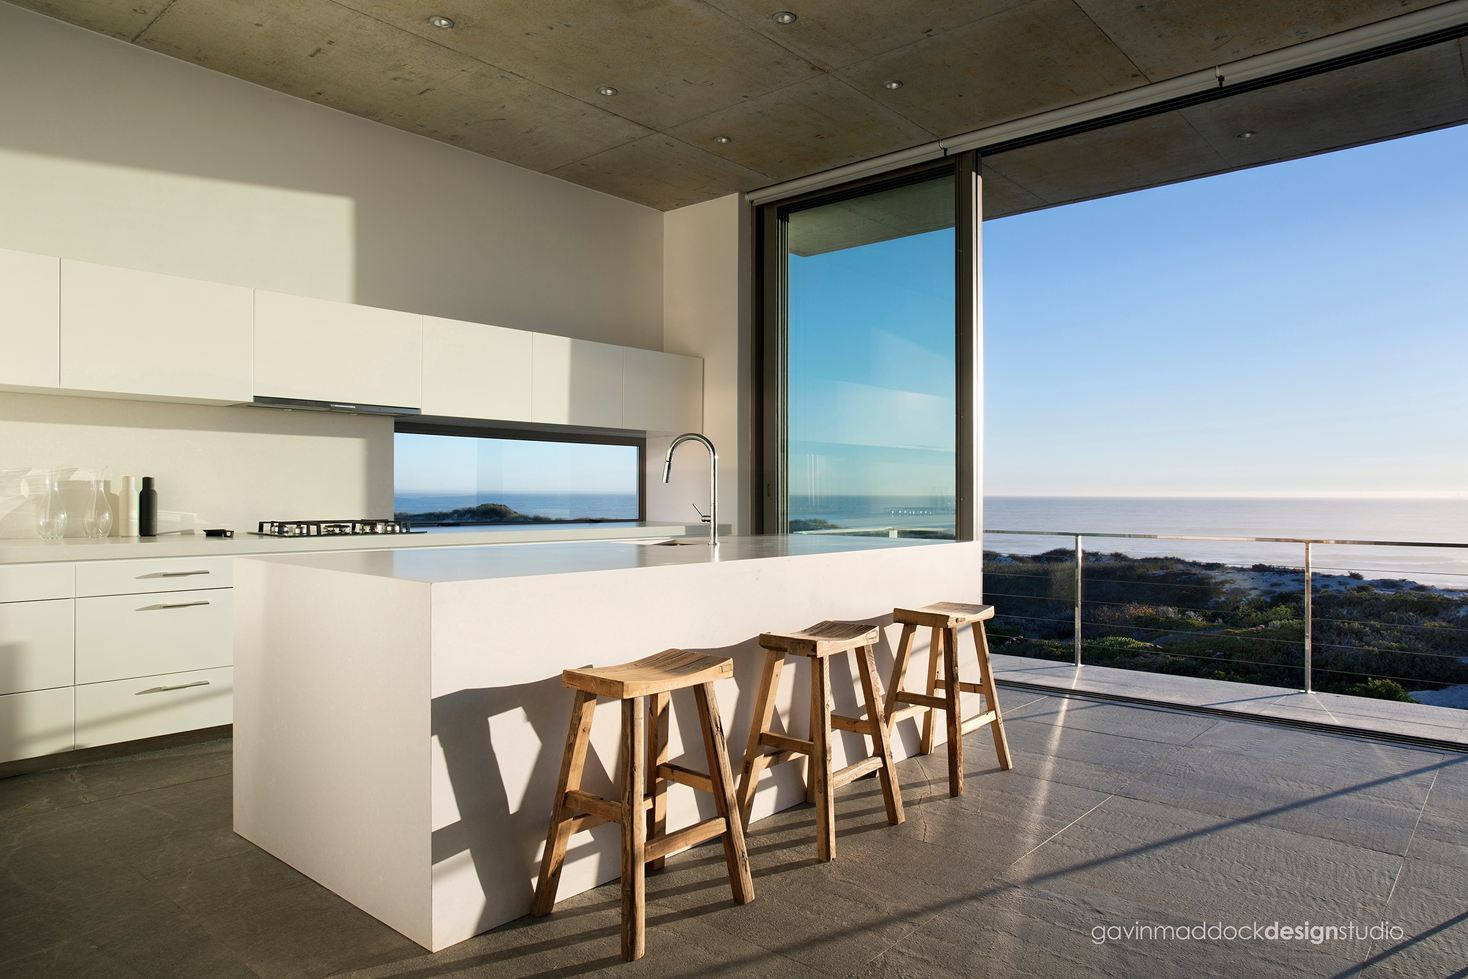 Pearl Bay Residence in Yzerfontein, South Africa by Gavin Maddock Design Studio